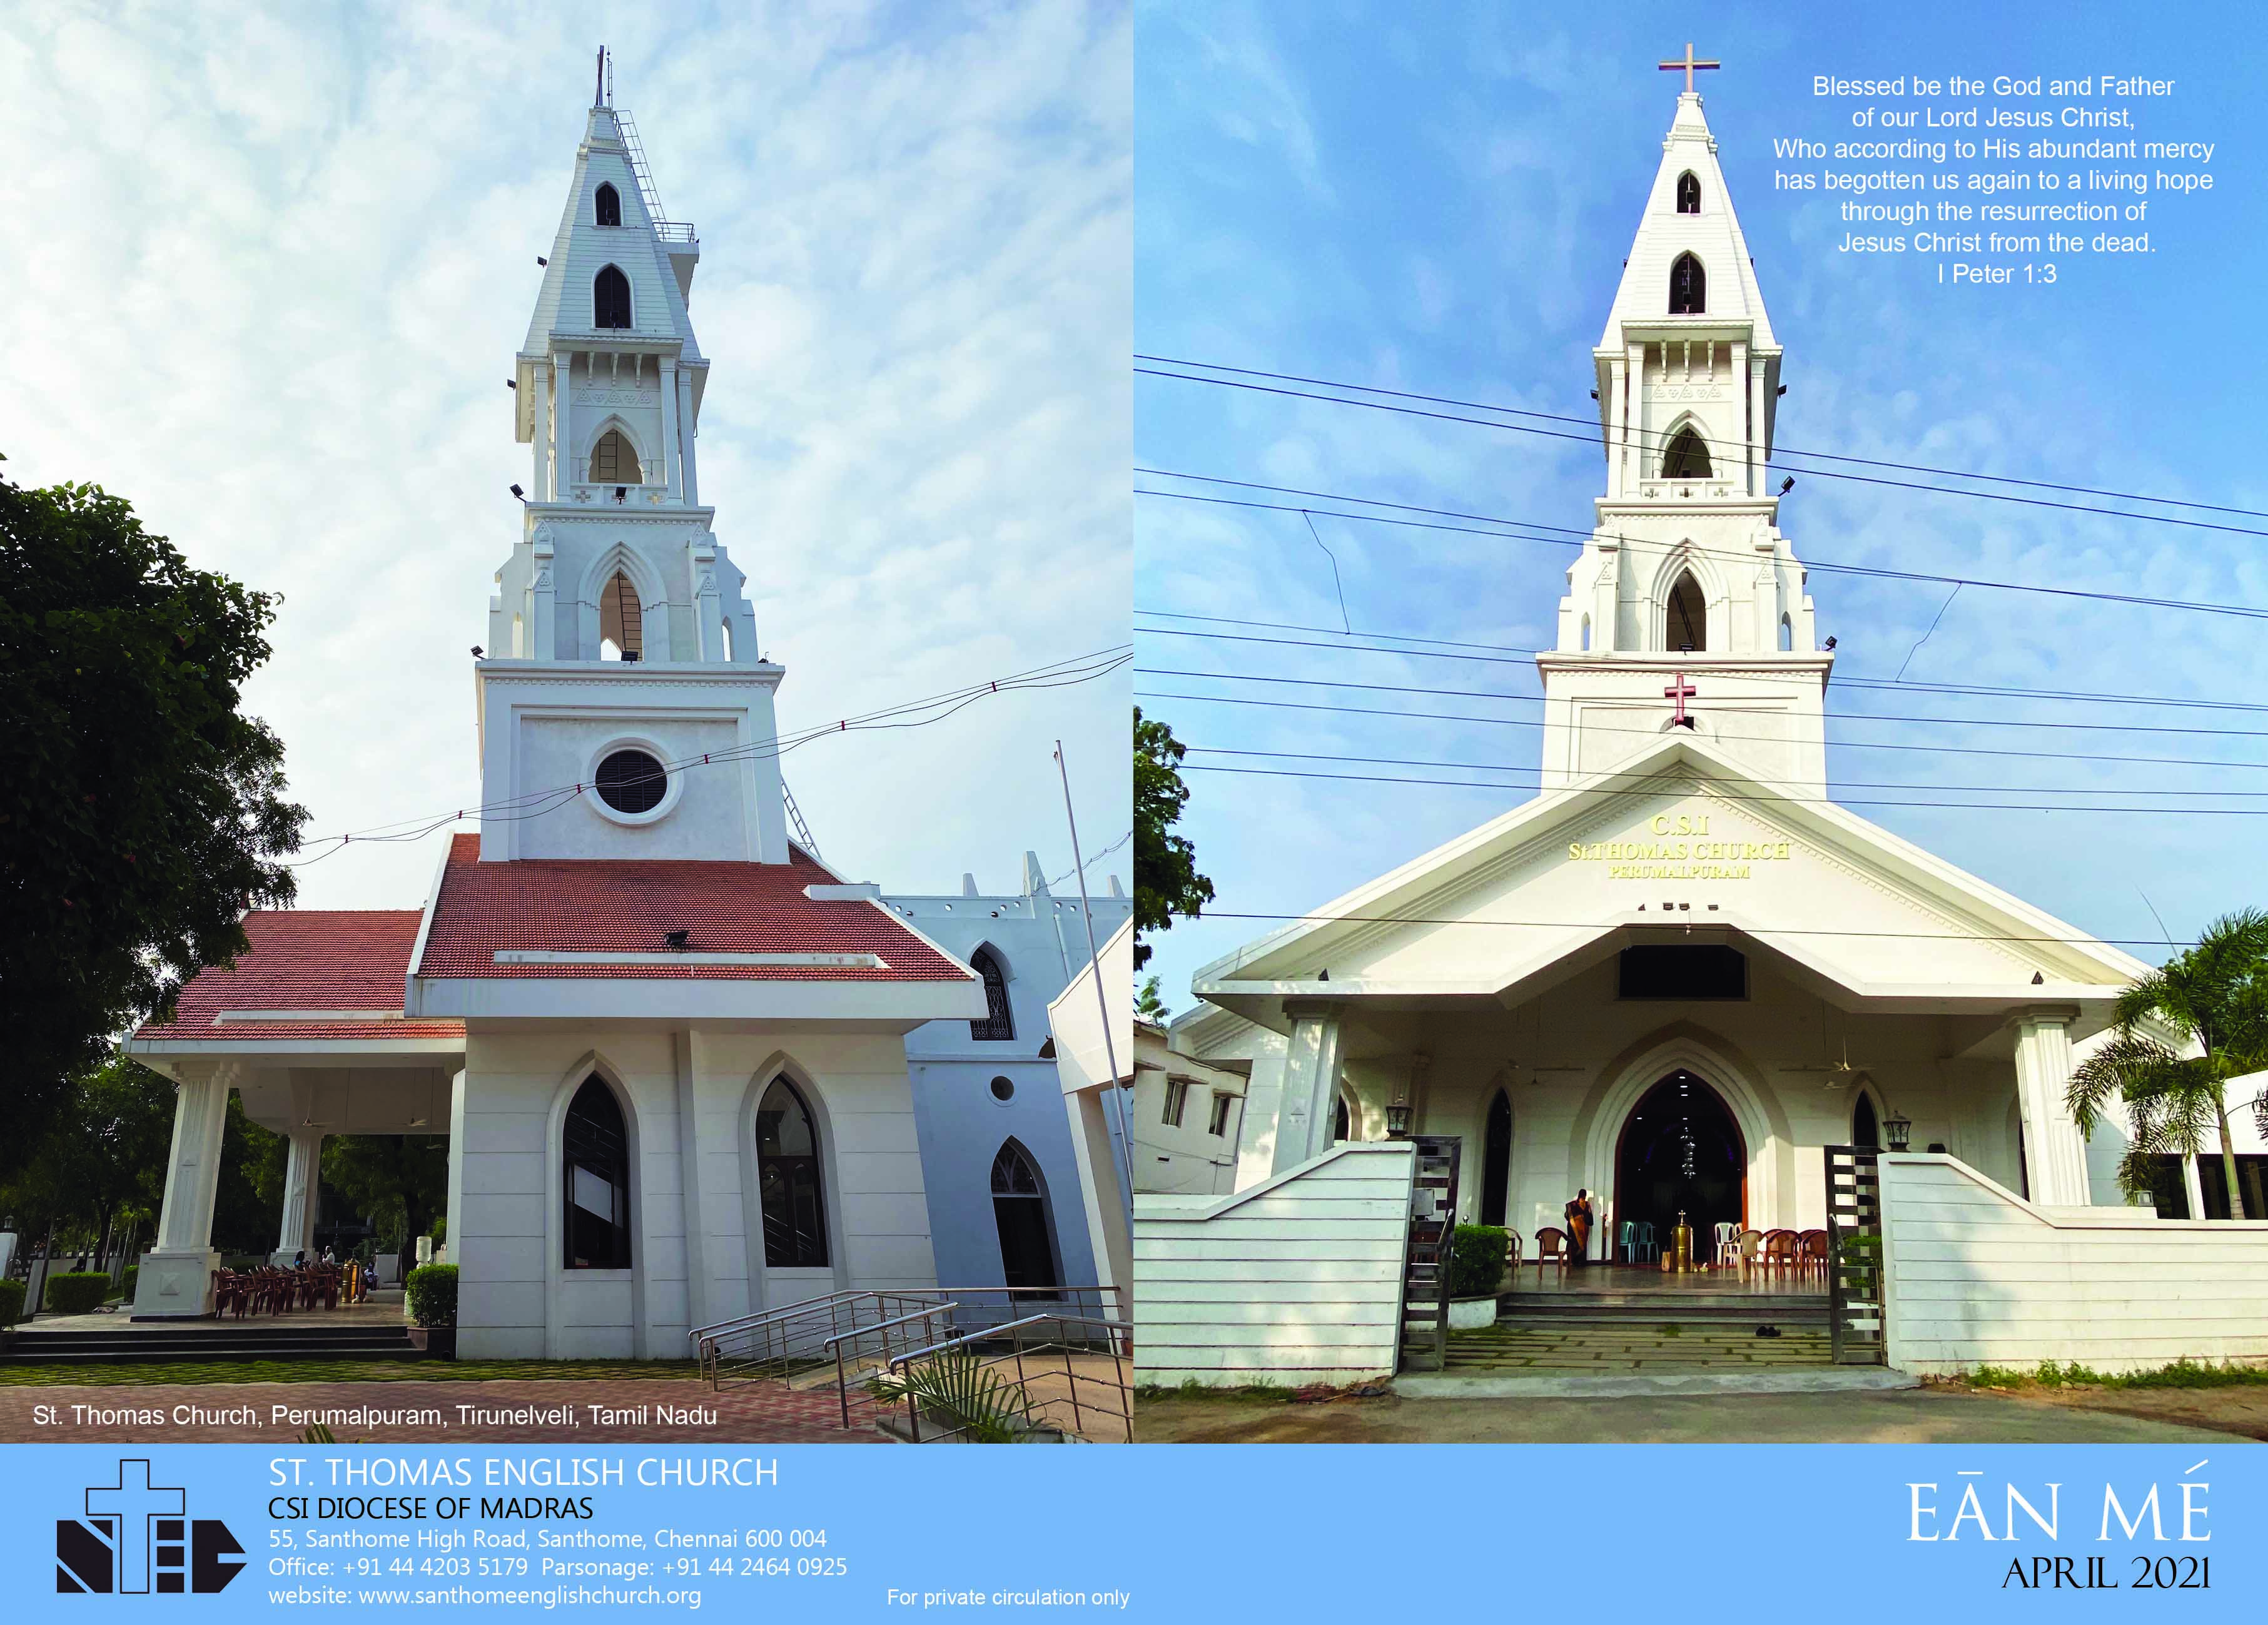 apr 21 st thomas church, perumalpuram